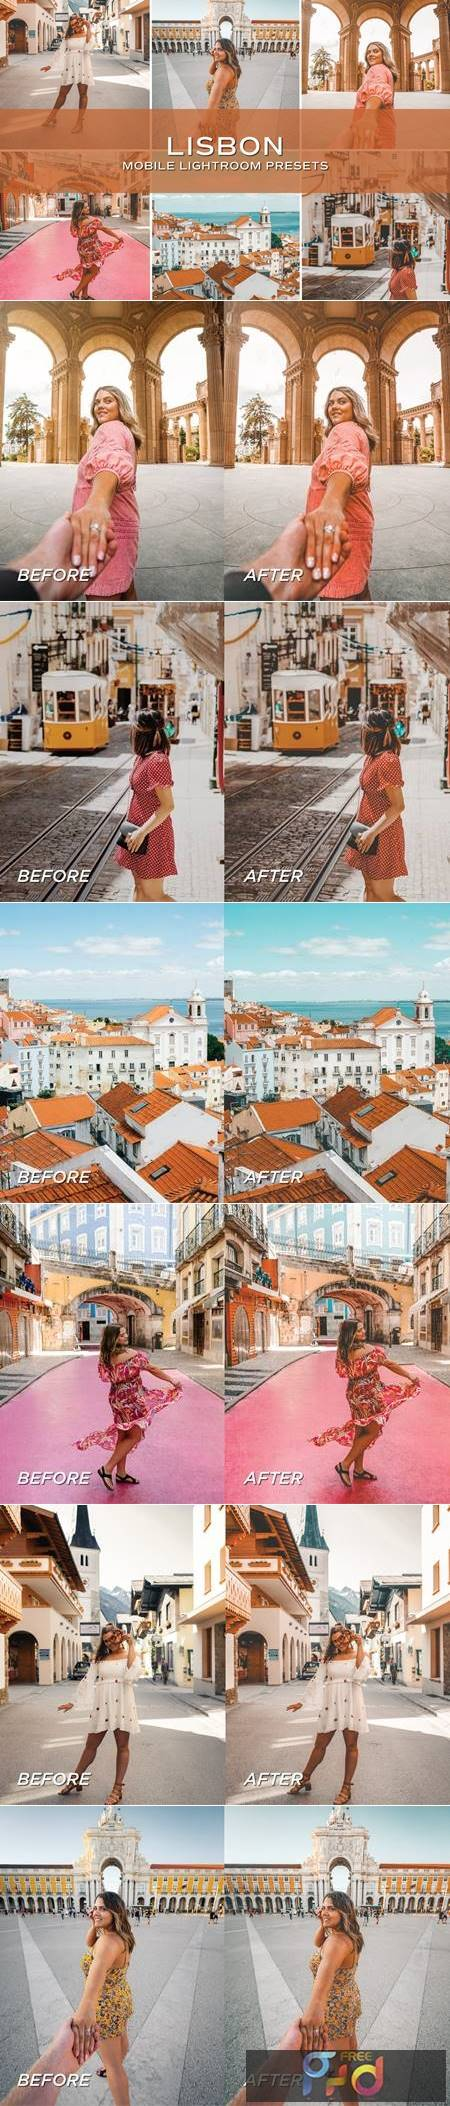 5 Lisbon Lightroom Presets 5701235 1